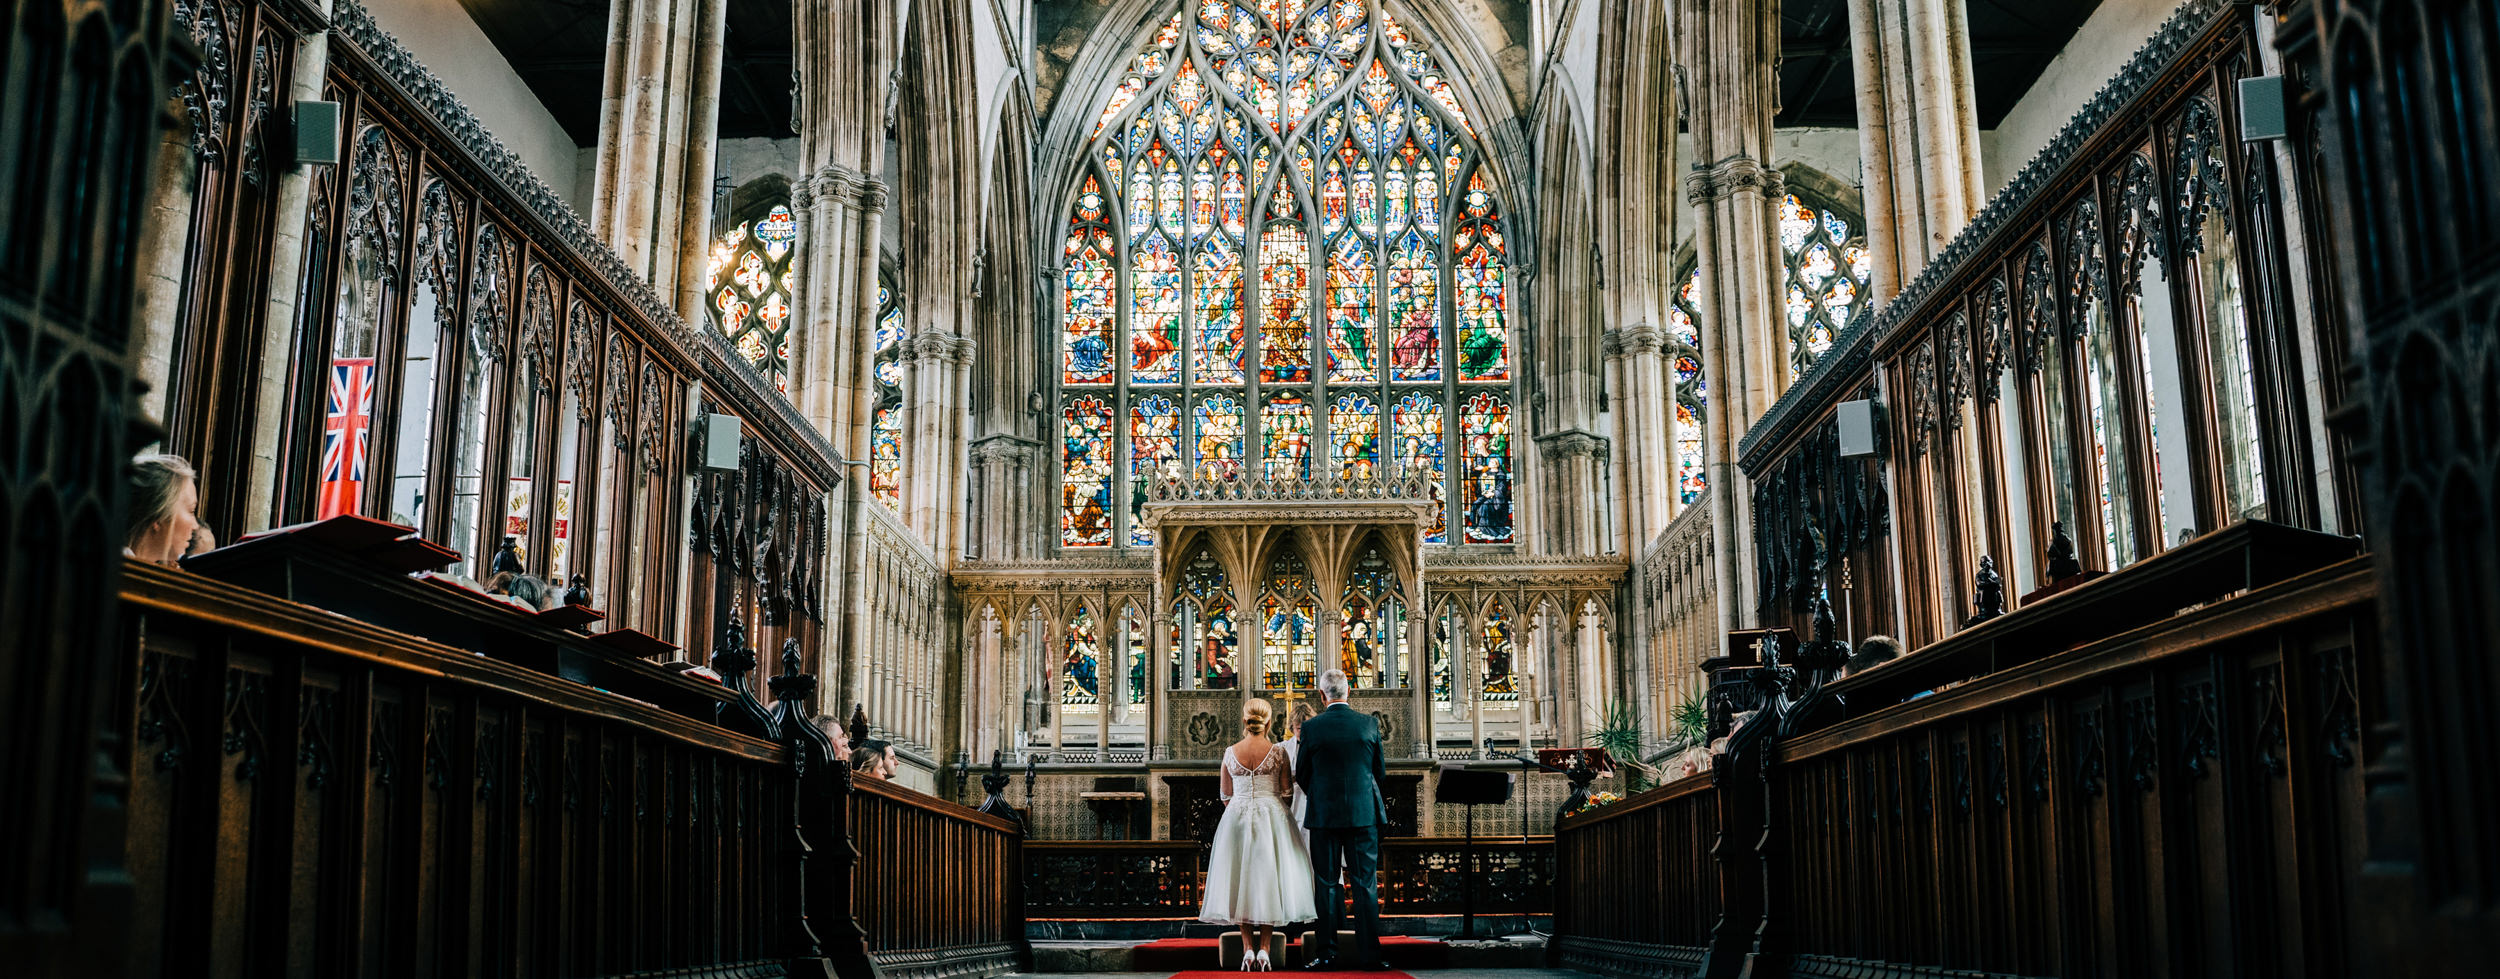 East-Yorkshire-Wedding-Photographer-Hull-Minster-Weddings-St-Marys-Cottingham-Church-Abraham-Photography-03